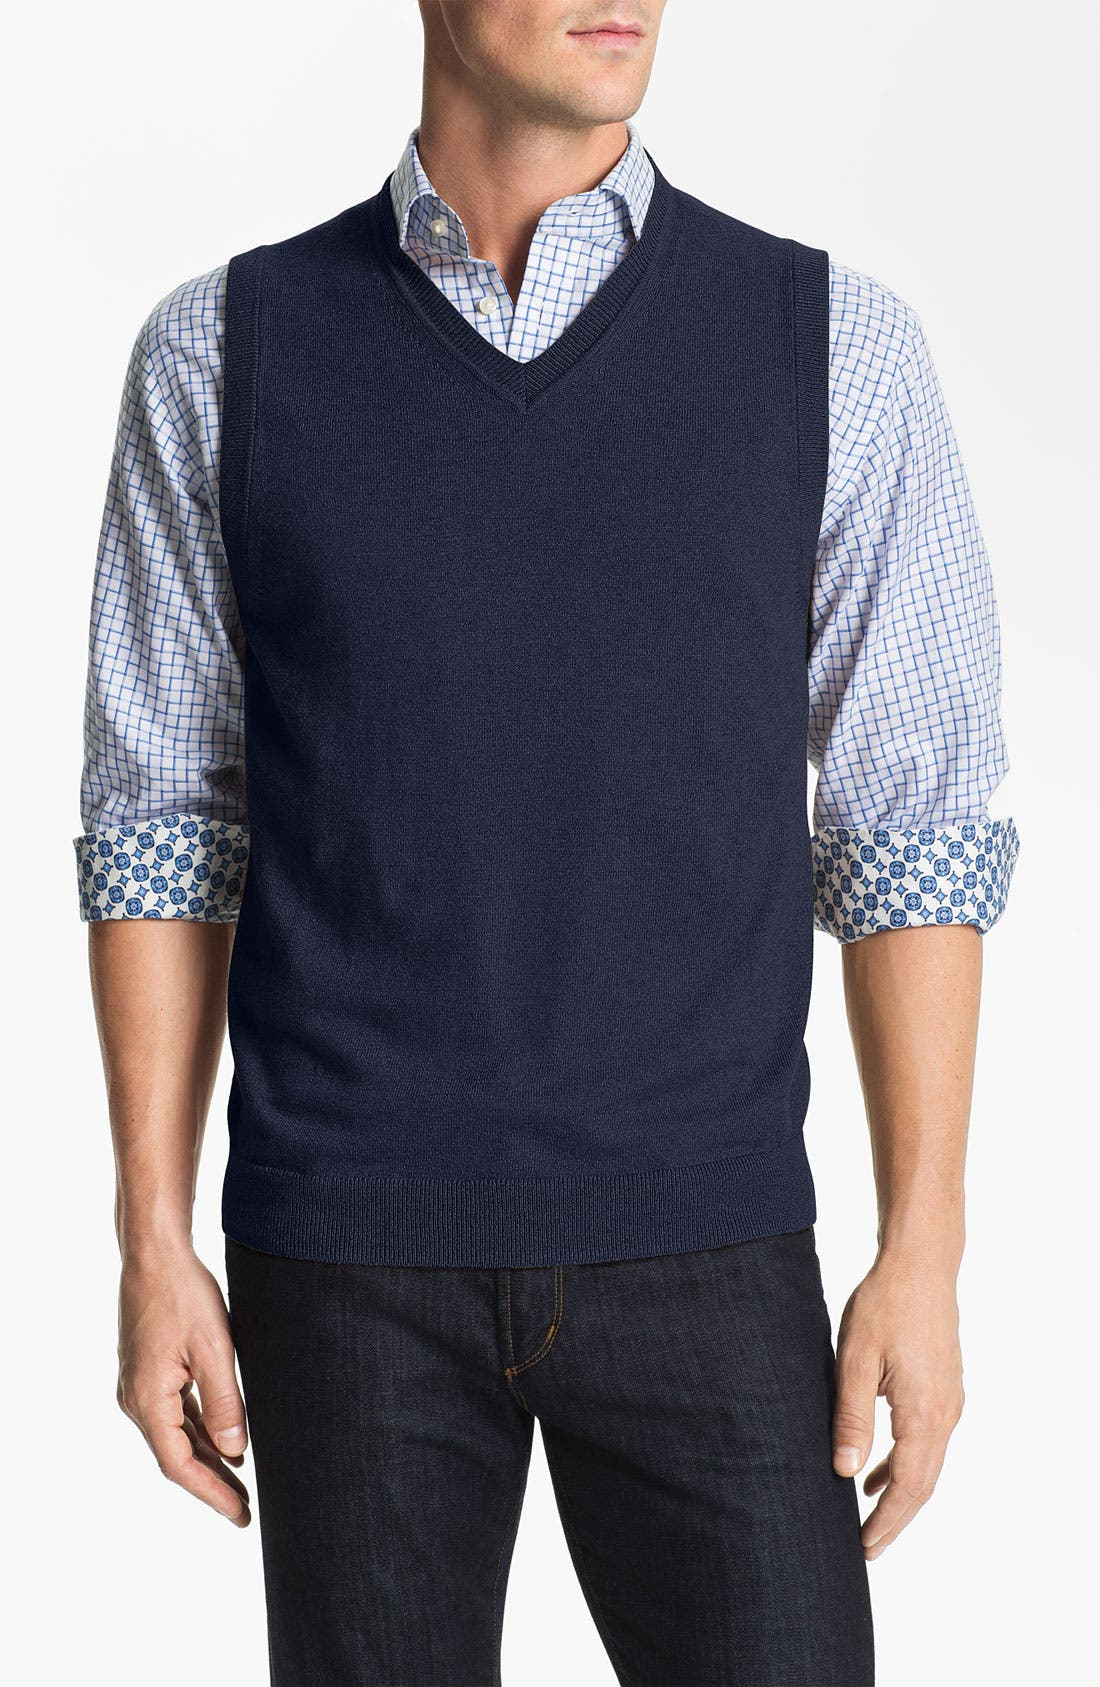 Alternate Image 1 Selected - Nordstrom Cotton & Cashmere Sweater Vest